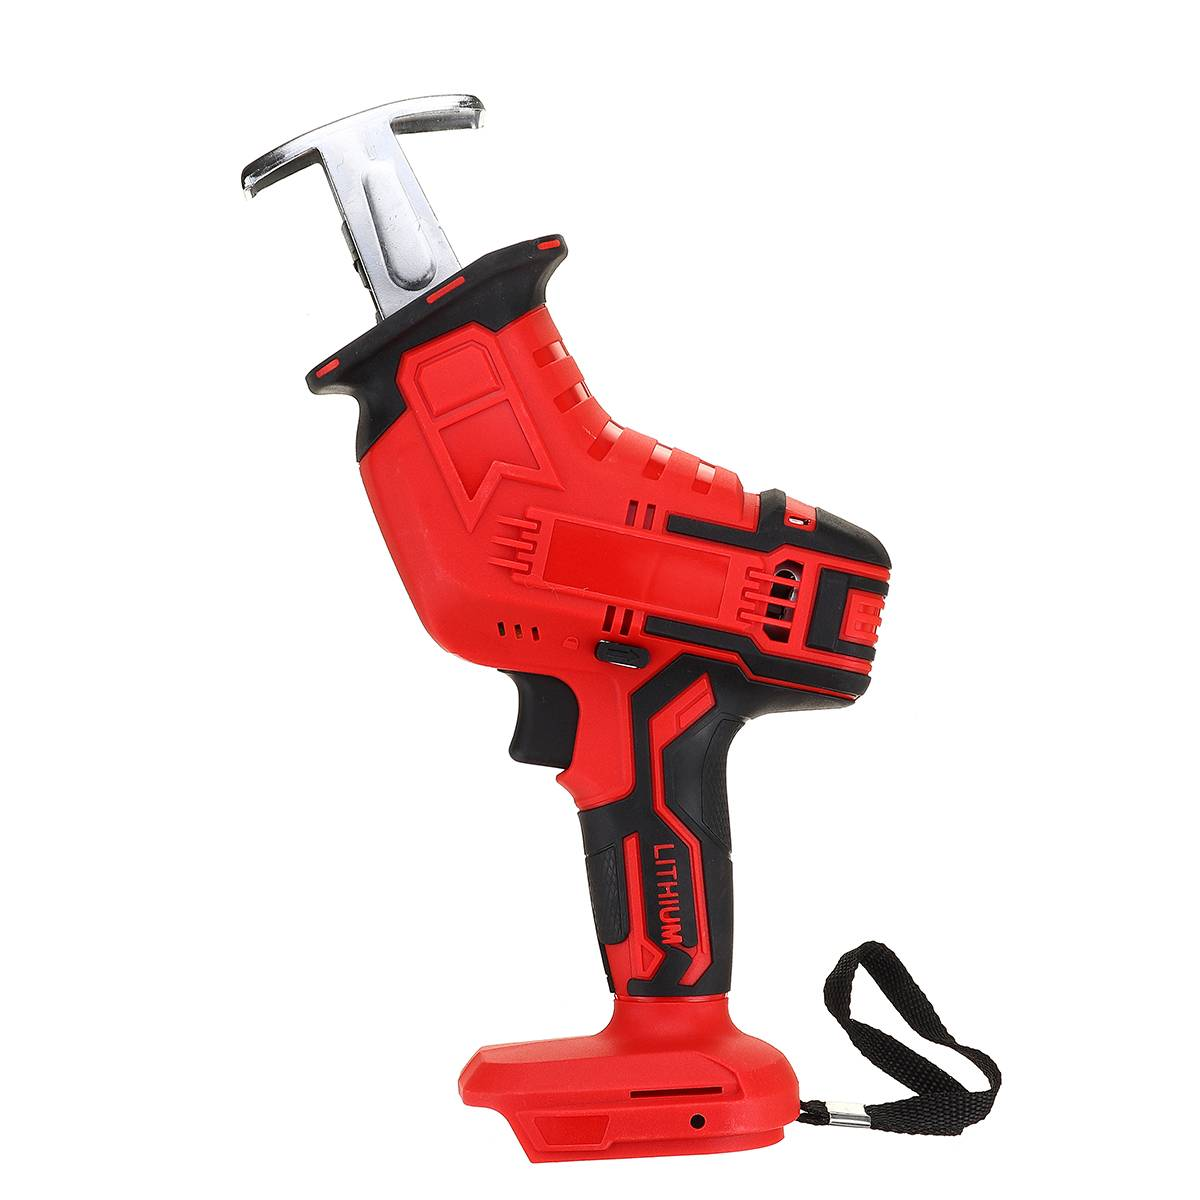 Tools : 18V Cordless Reciprocating Saw Body Adjustable Speed Replacement Mini Electric Saw Woodworking Cutter Tool for Makita Battery